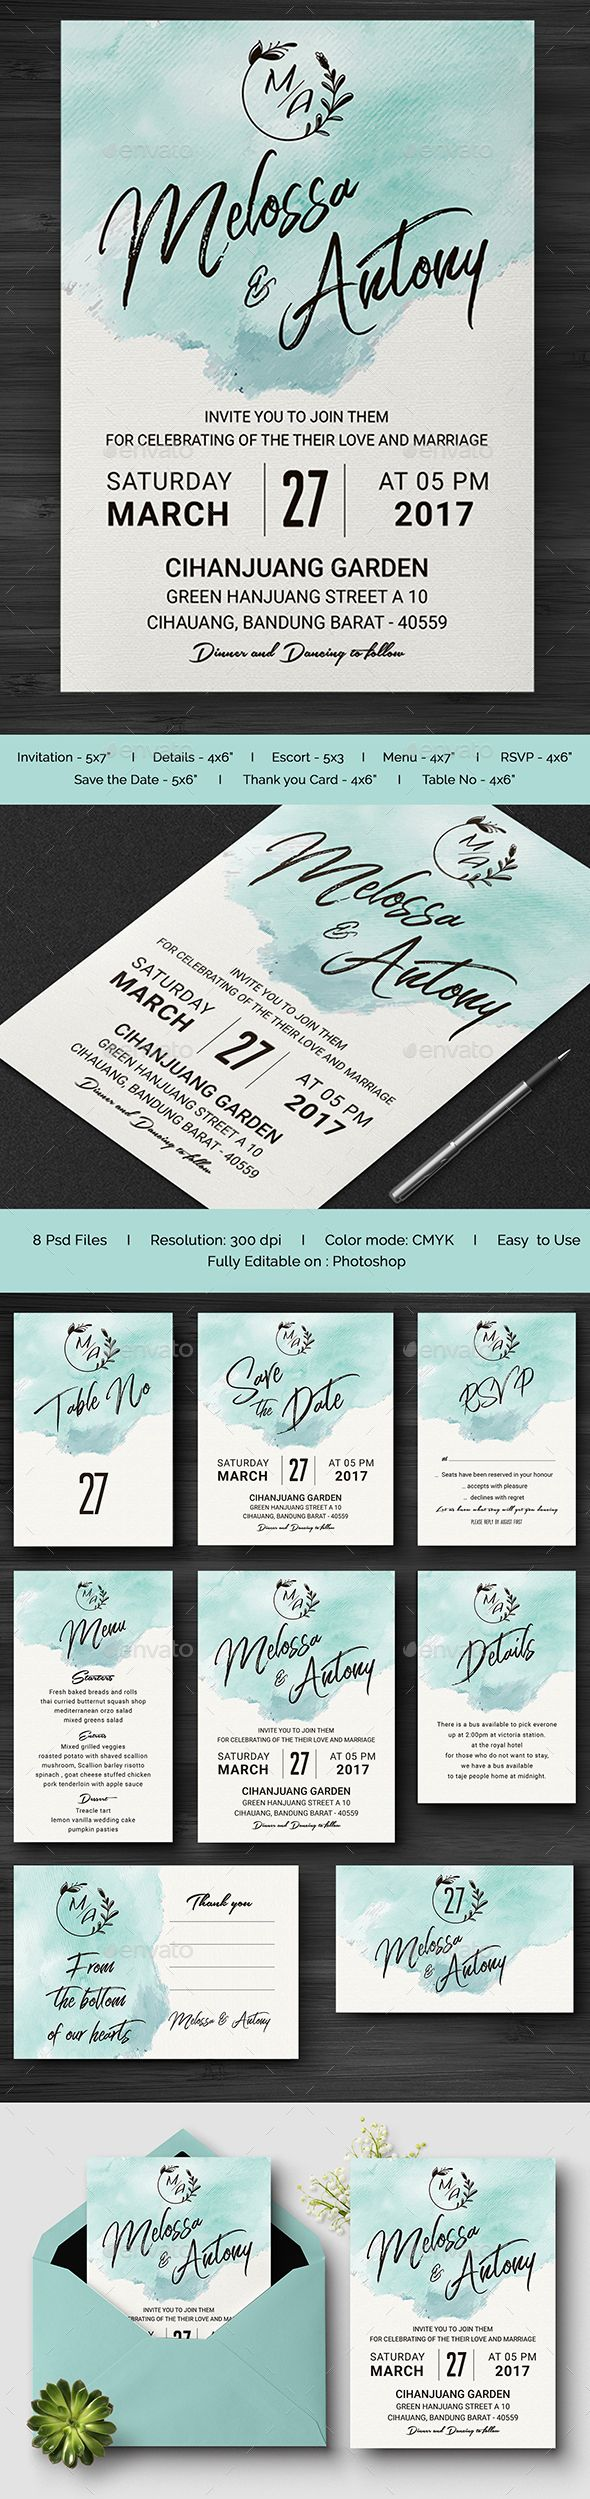 wedding planning checklist spreadsheet free%0A  Wedding  Invitation  Print Templates Download here  https   graphicriver